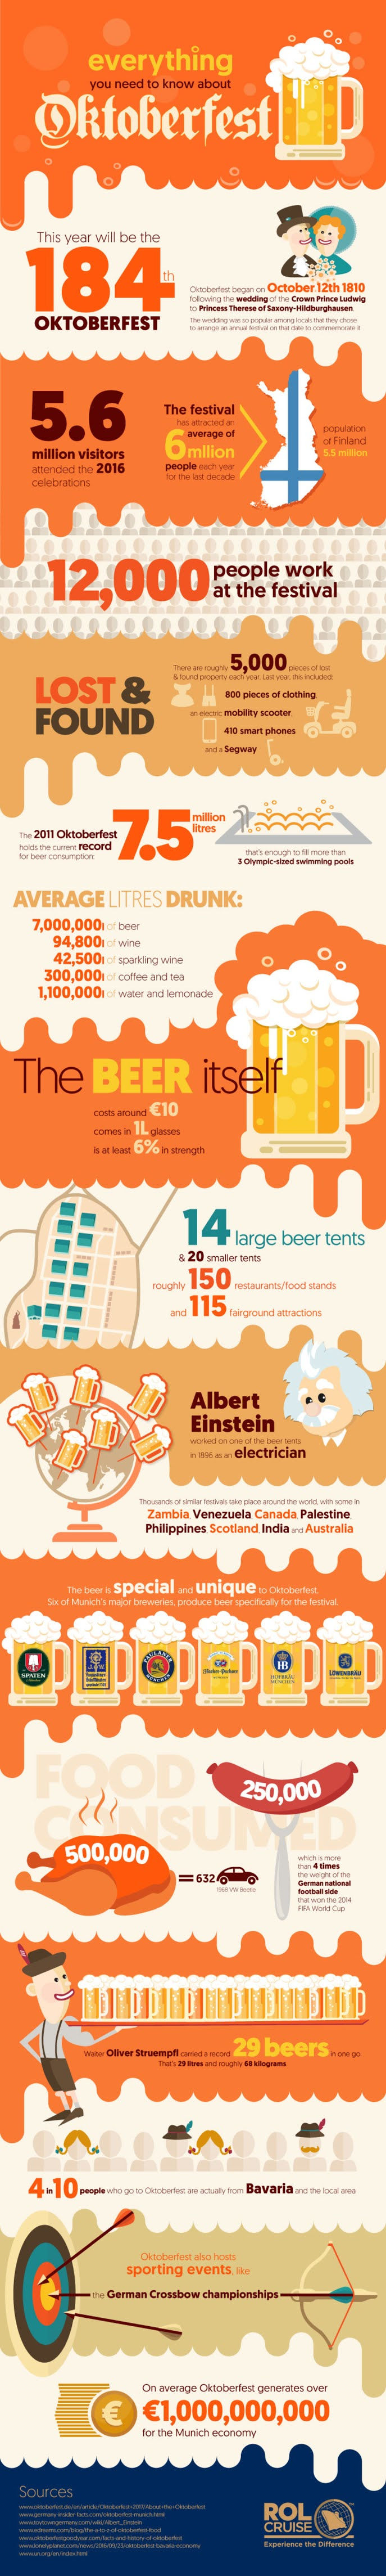 Everything you need to know about Oktoberfest #infographic